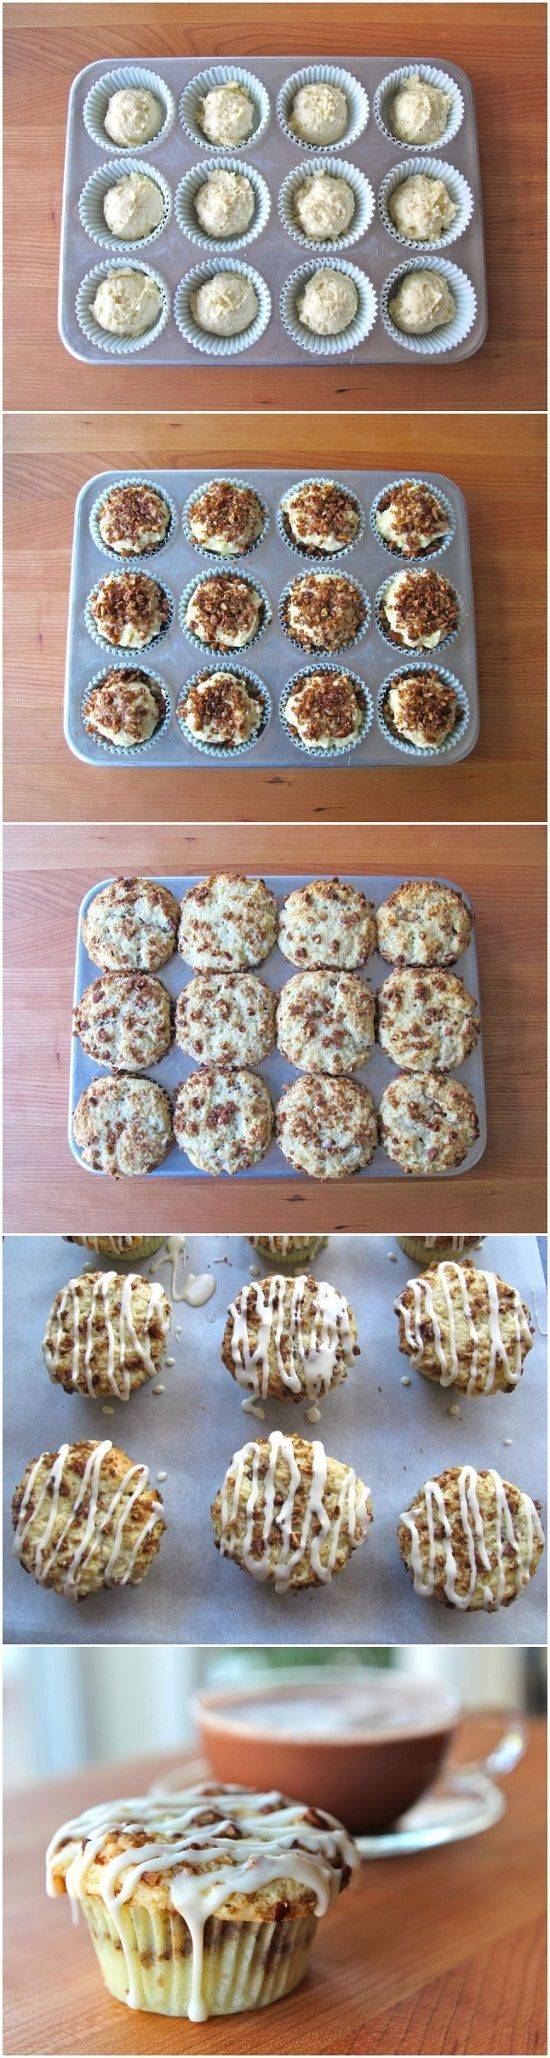 Coffee Cake Cupcakes - for tea party or book club / womens bible study